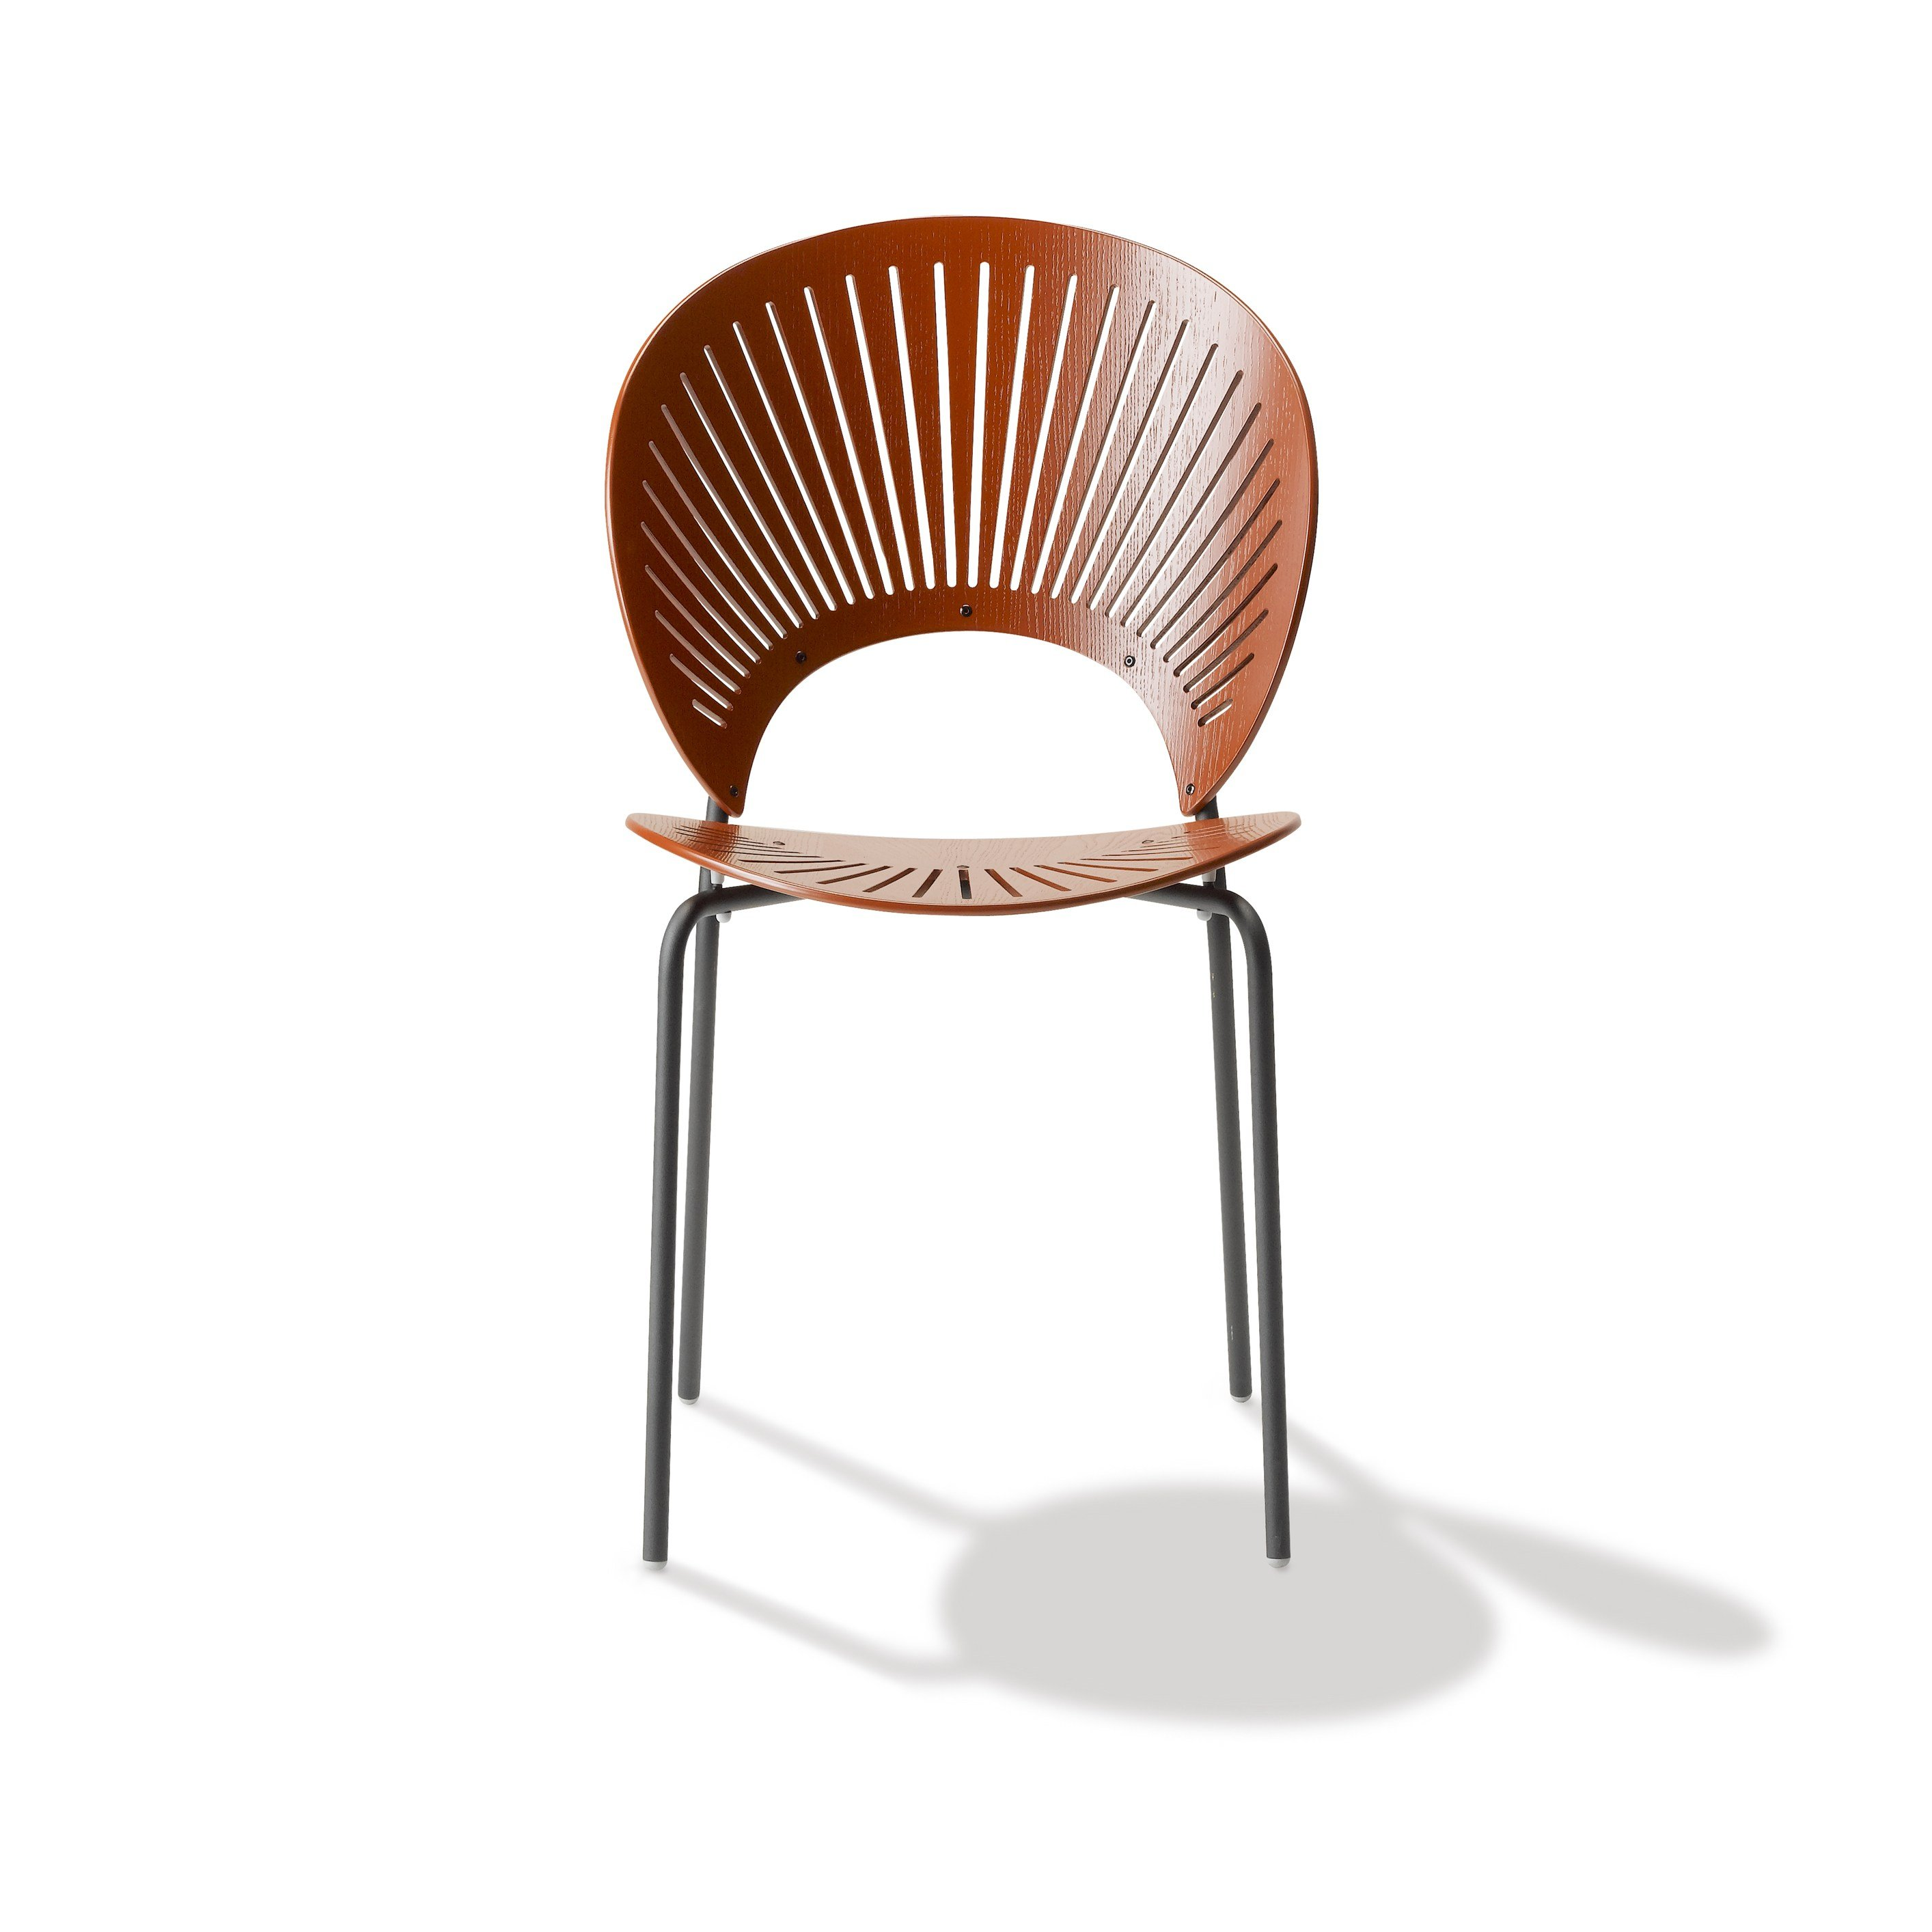 Marvelous photograph of TRINIDAD Chair by FREDERICIA FURNITURE design Nanna Ditzel with #762F0E color and 2828x2828 pixels